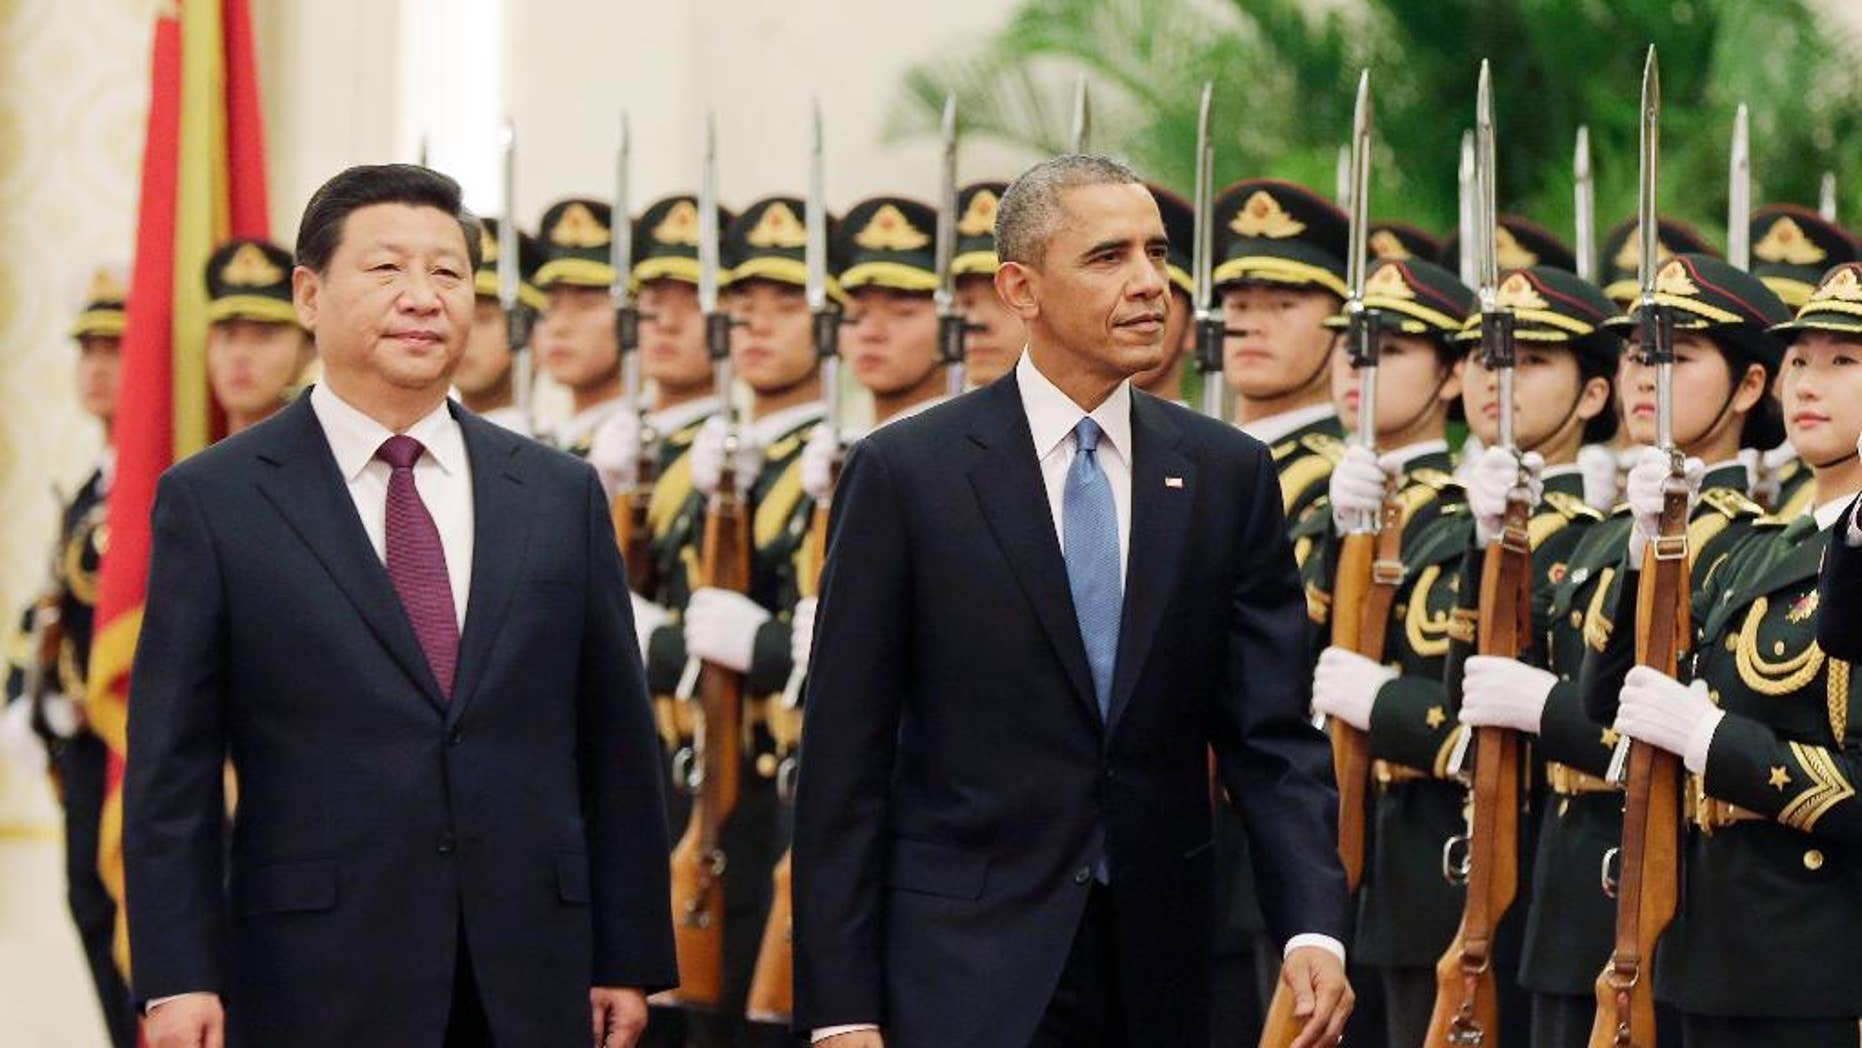 U.S. President Barack Obama, right, and Chinese President Xi Jinping review the honor guard during a welcome ceremony at the Great Hall of the People in Beijing, Wednesday, Nov. 12, 2014. When Xi Jinping took the reins of a booming China two years ago, President Barack Obama saw an opportunity to remake America's relationship with the Asian power. But even after Obama's unusually robust efforts to forge personal ties with Xi, the two leaders are meeting in Beijing amid significant tensions, both old and new. (AP Photo/Andy Wong)